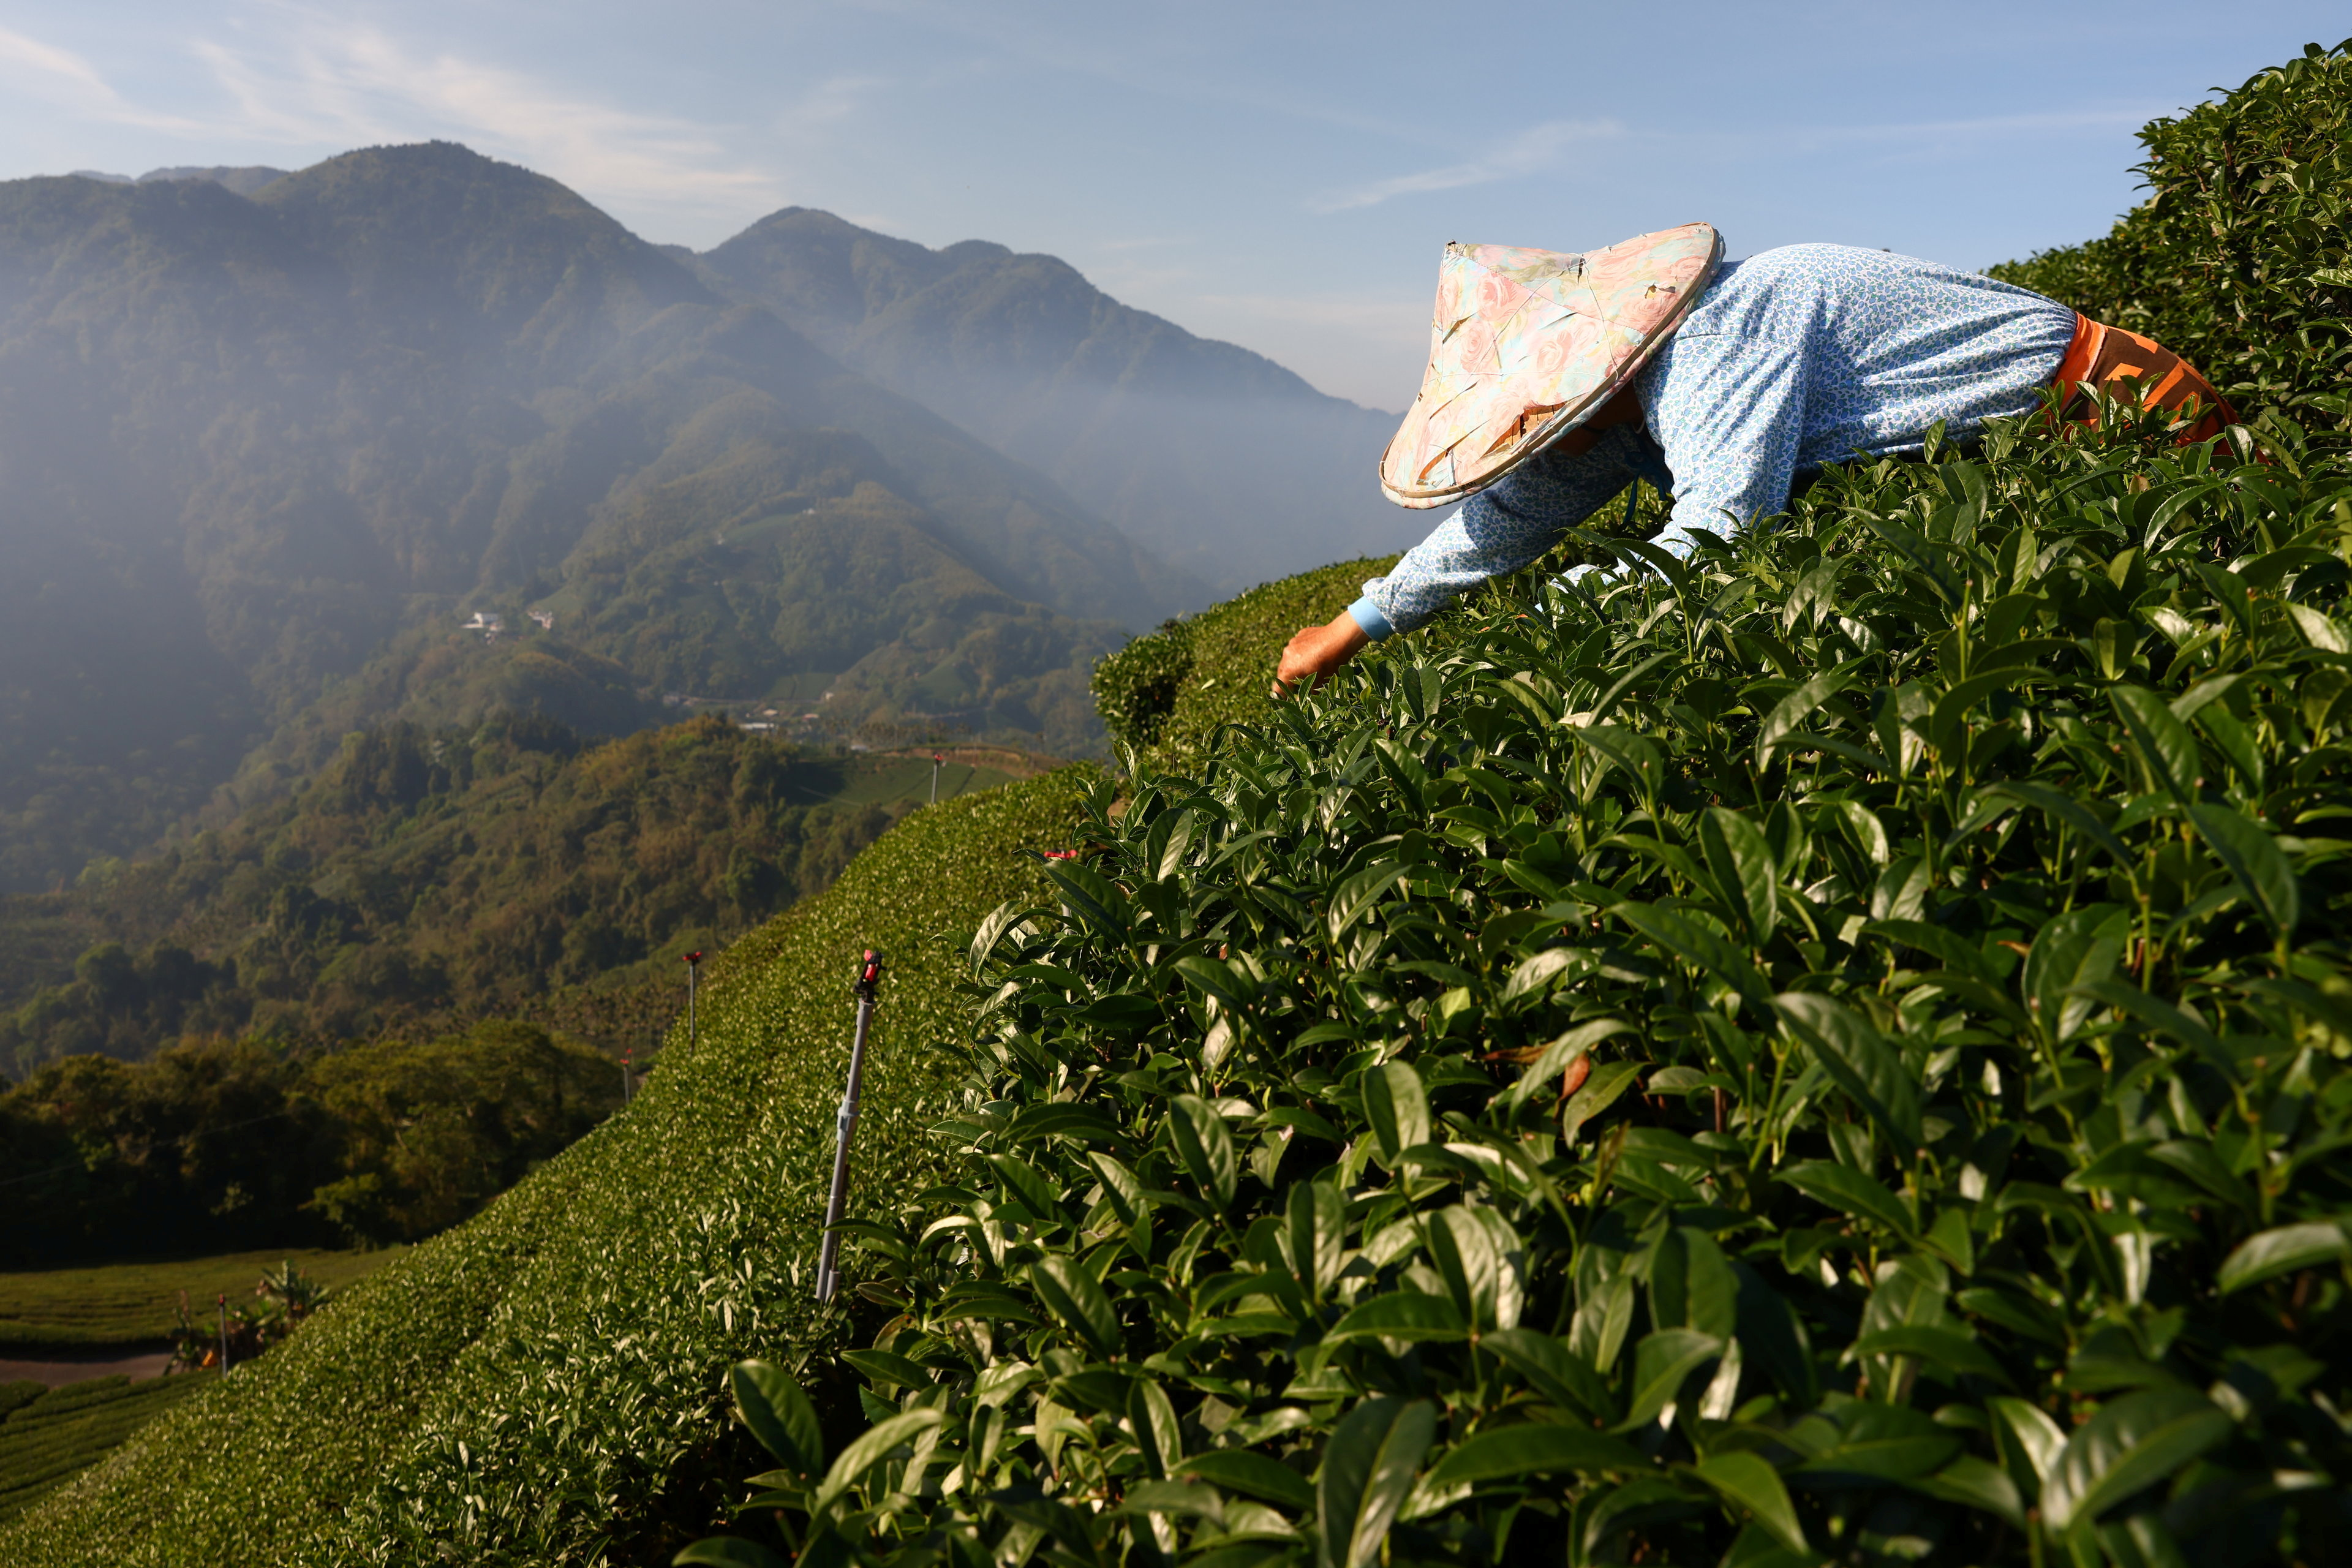 Tea harvesting staff collect tea leaves on a plantation in Jiayi, Taiwan, May 7, 2021. Staff are paid based on the weight of the tea they collect, however, the drought has caused a decrease in growth which affects the amount of money they can earn per harvest. REUTERS/Ann Wang